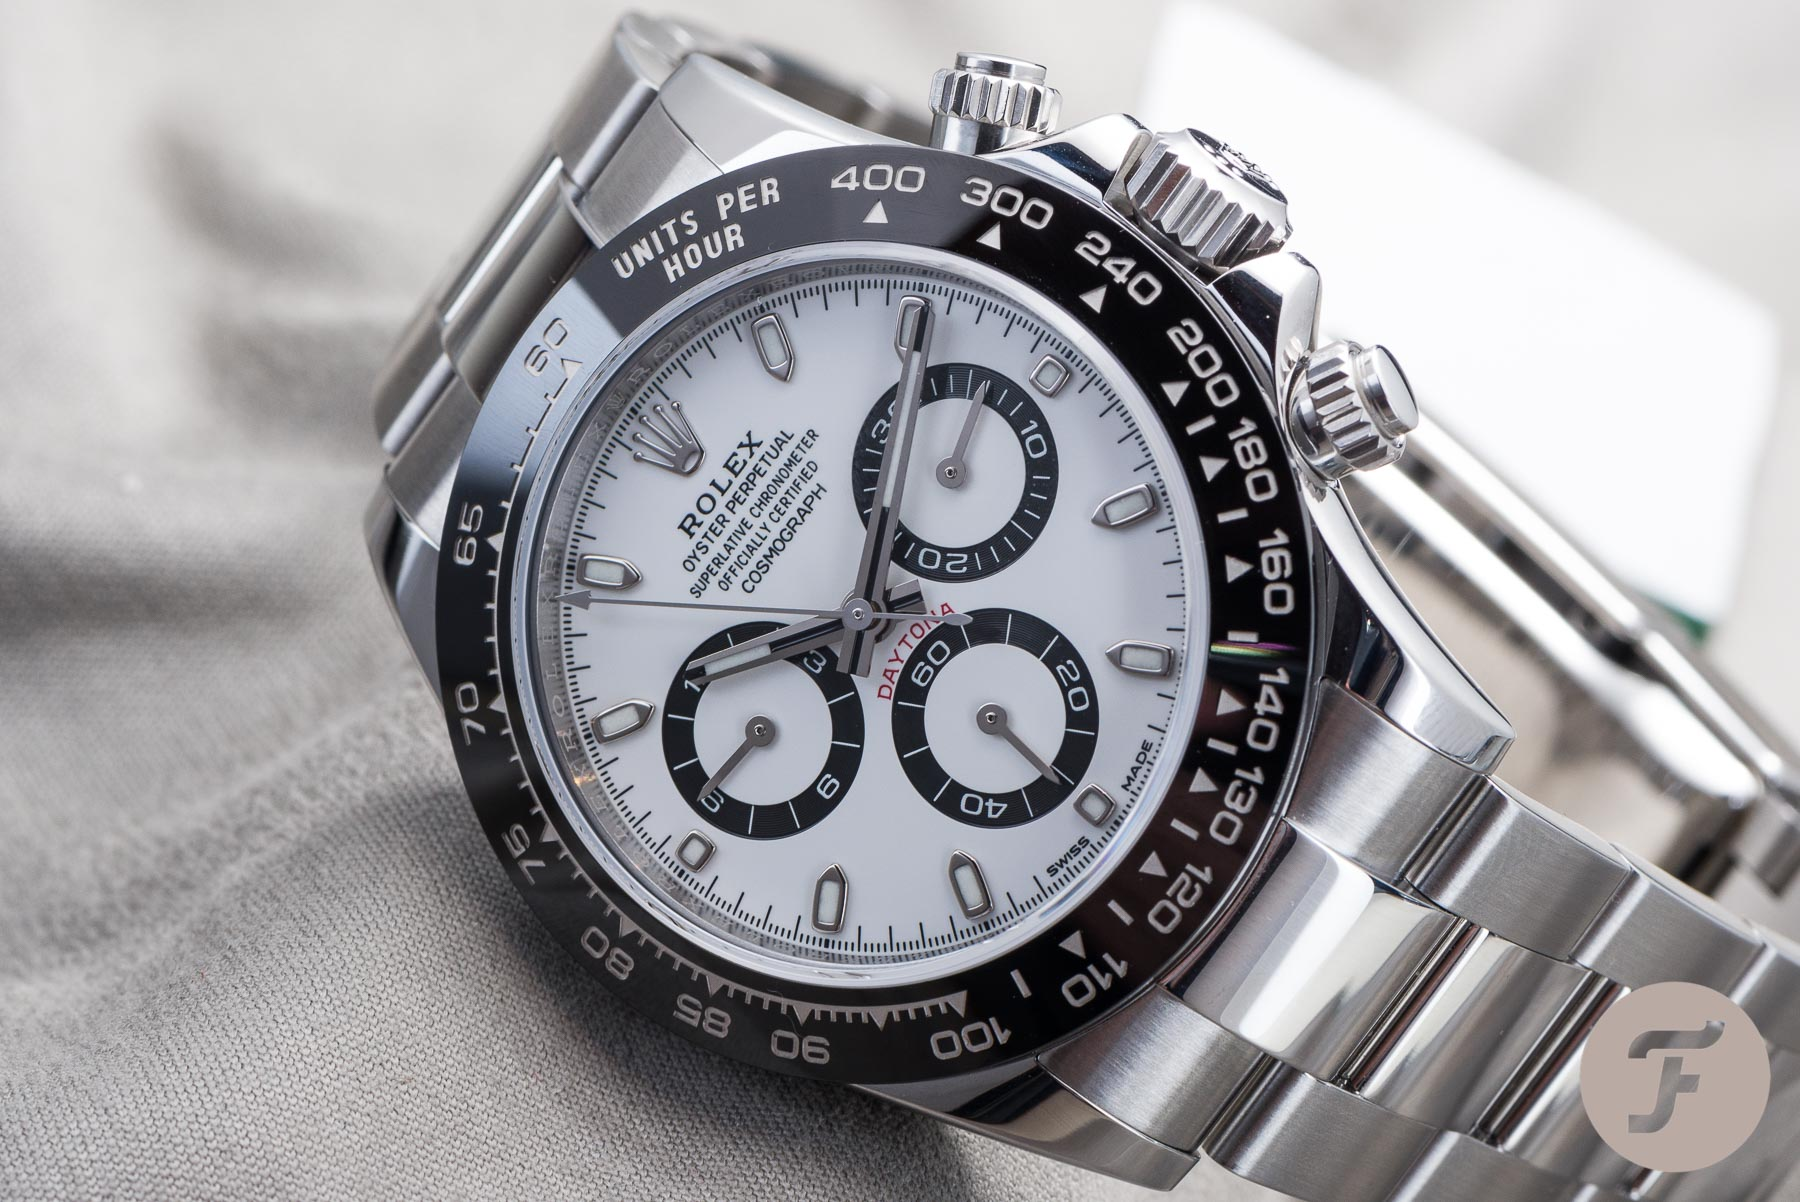 Top Four Unaffiliated Watch And Car Deals That Could Exist (But Don't)